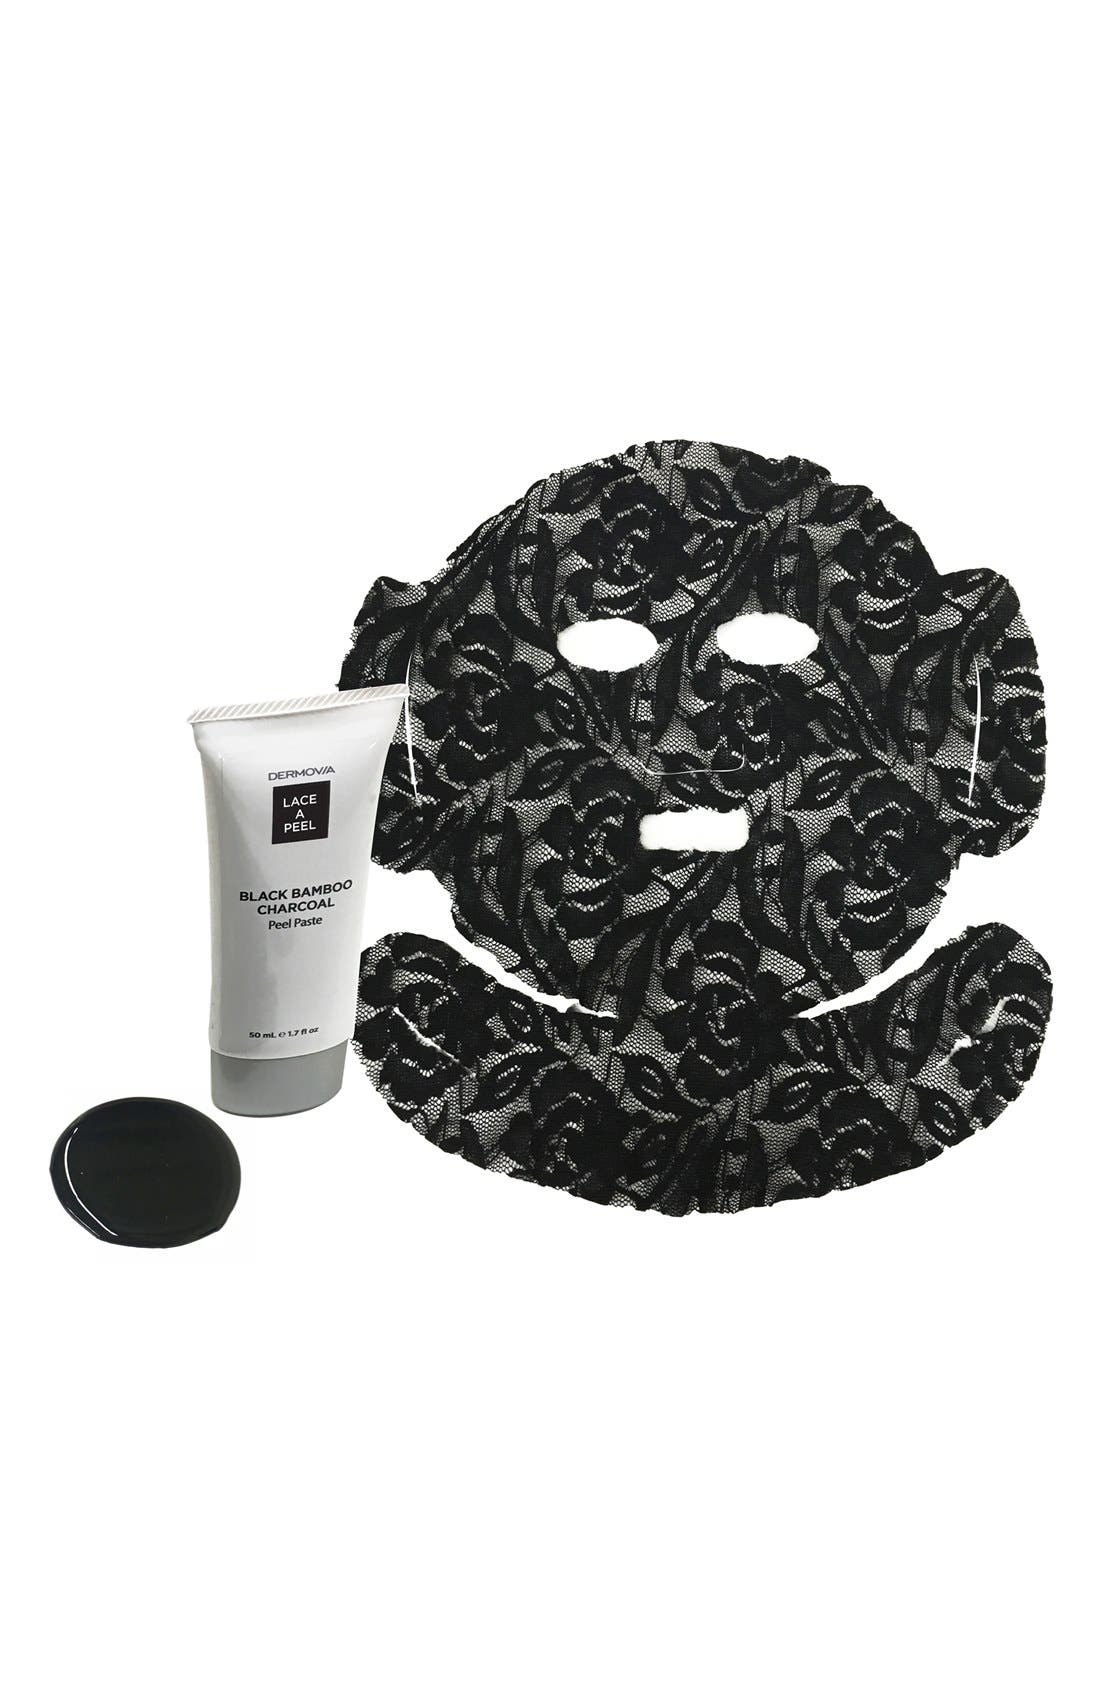 Lace A Peel Black Bamboo Charcoal Peel Off Mask,                             Alternate thumbnail 5, color,                             NO COLOR